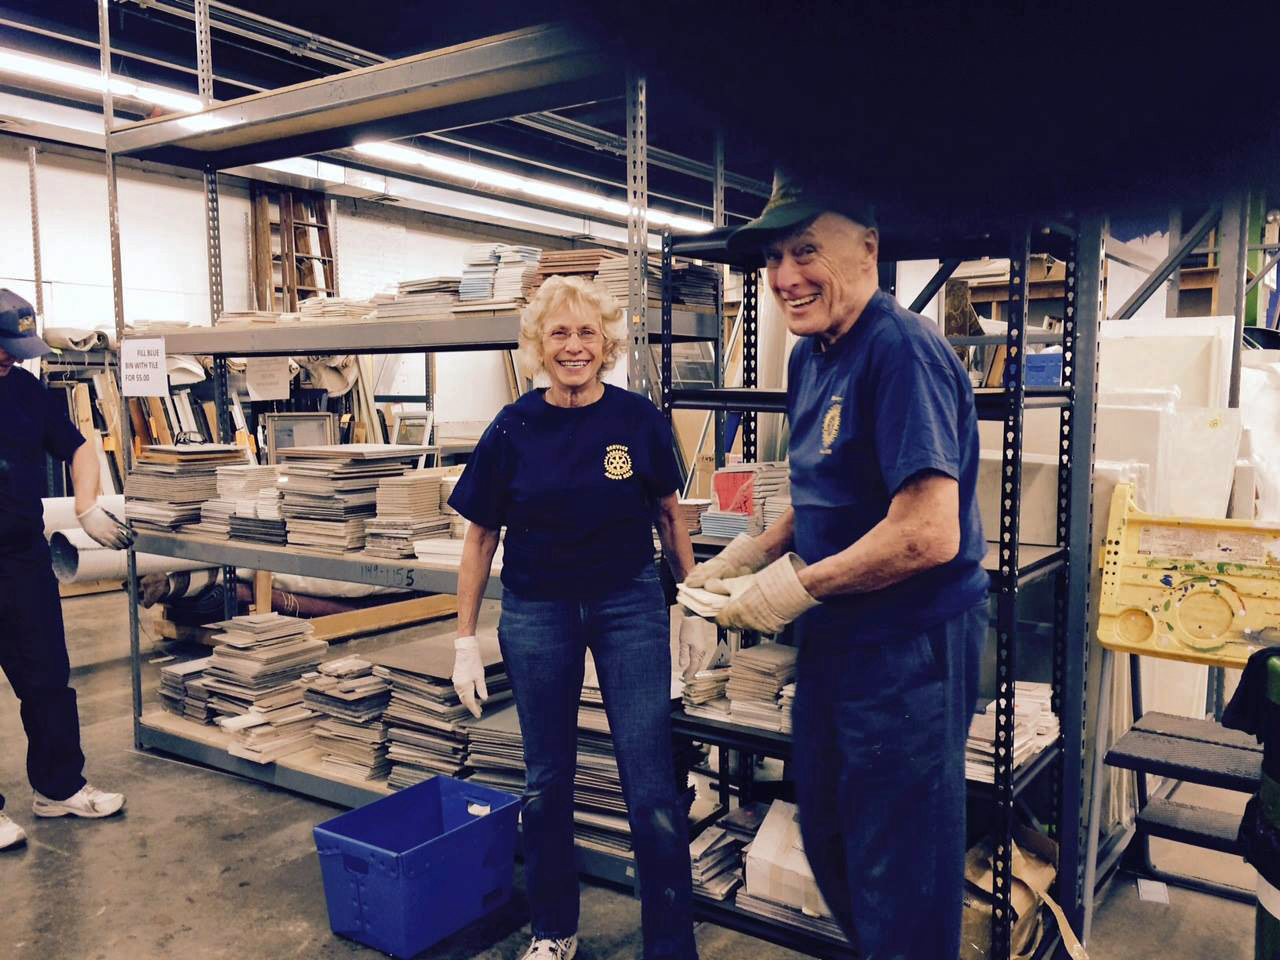 SATURDAY, AUGUST 17, 2019 - HABITAT FOR HUMANITY PHILA. RESTORE VOLUNTEER DAY10:30am‒2pm Volunteers needed to greet donors, unload vehicles, sort donations, and help move merchandise to sales floor.Please register: Habitat Philadelphia ReStore Volunteer Day102.9 WMGK live radio broadcast   food   funRead more on their website: MGK's Gimme Shelter with Habitat for Humanity